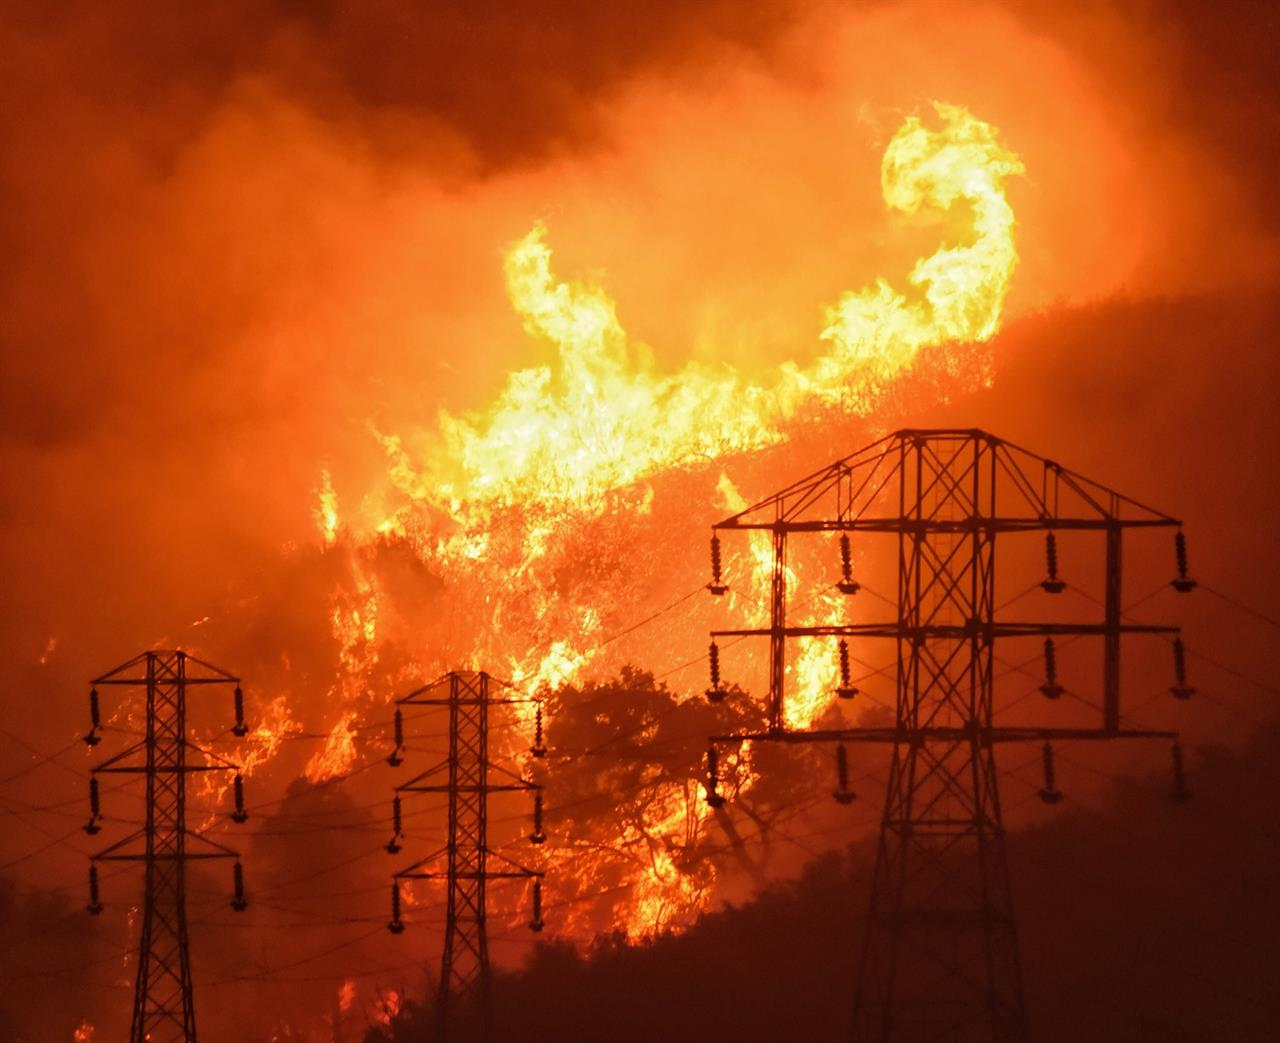 PG&E says it could cut power in 30 counties to prevent fires